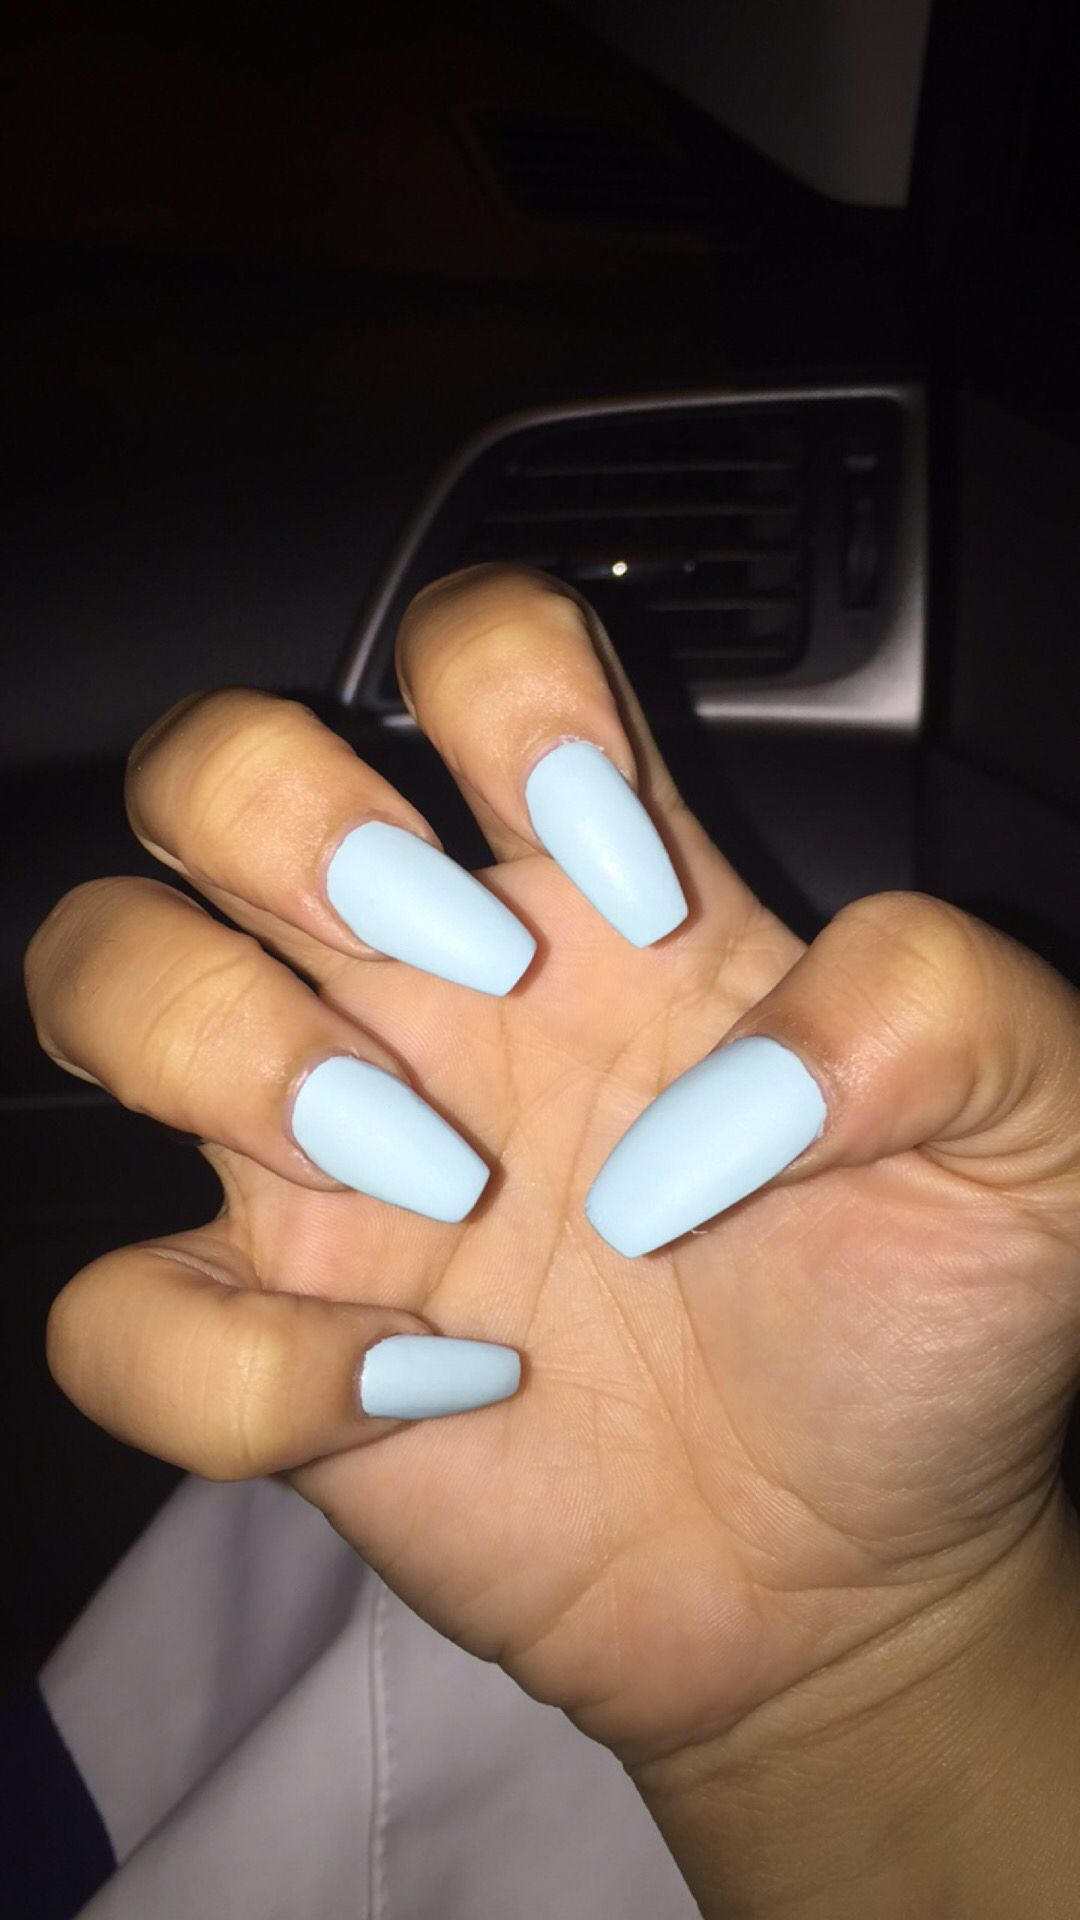 Mint Candy Le Coffin Shaped Nails Acrylic Long